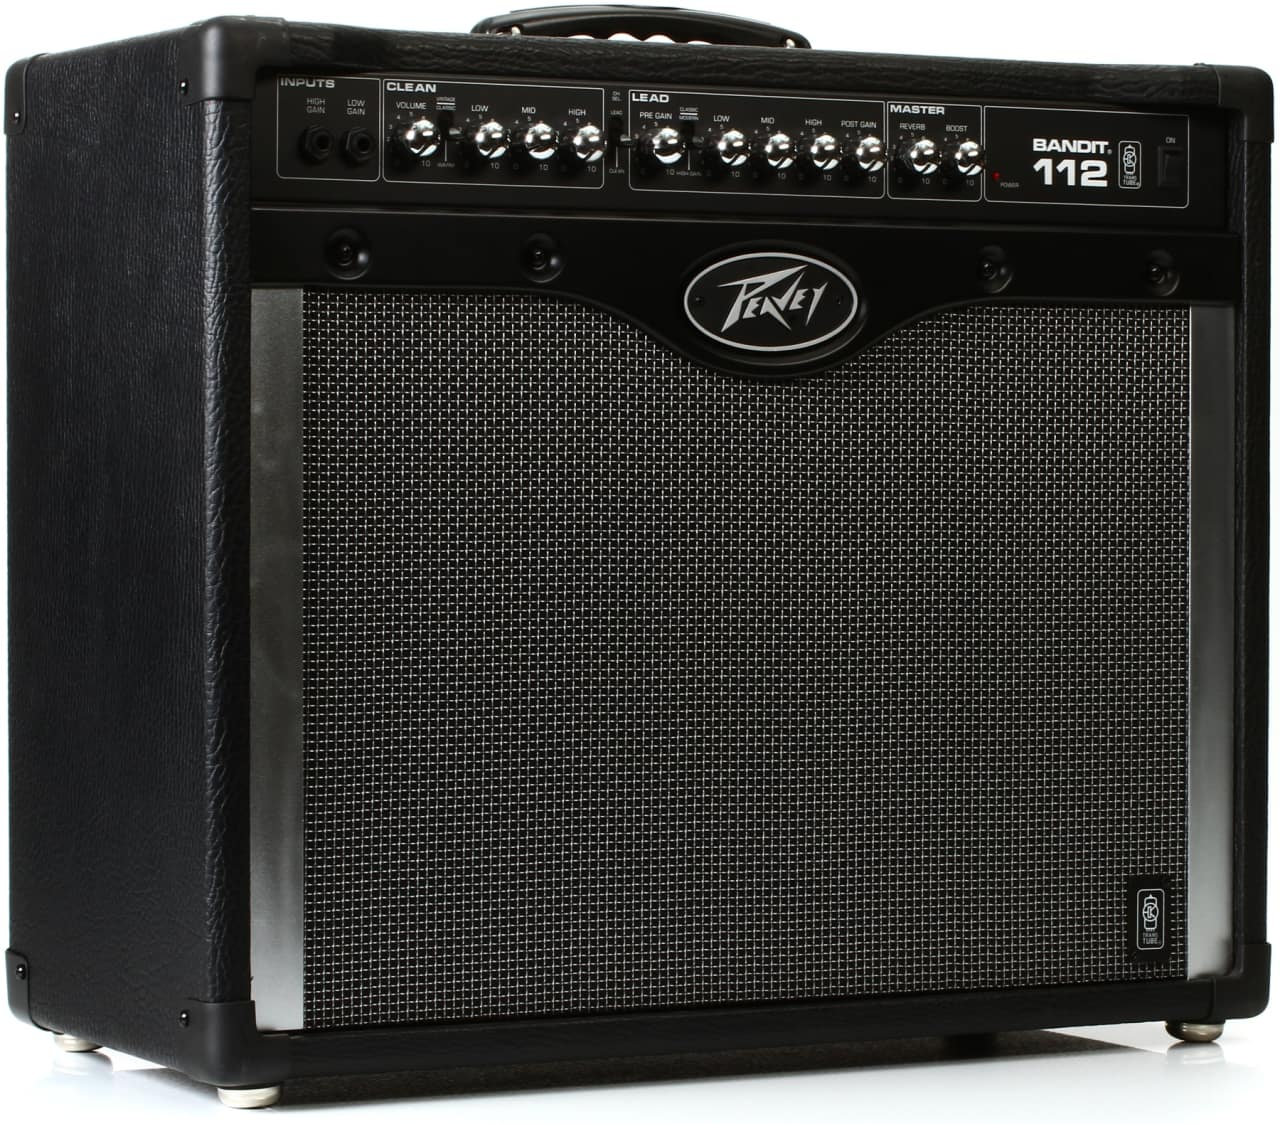 loud peavey bandit 112 80w 1x12 combo guitar amp free reverb. Black Bedroom Furniture Sets. Home Design Ideas